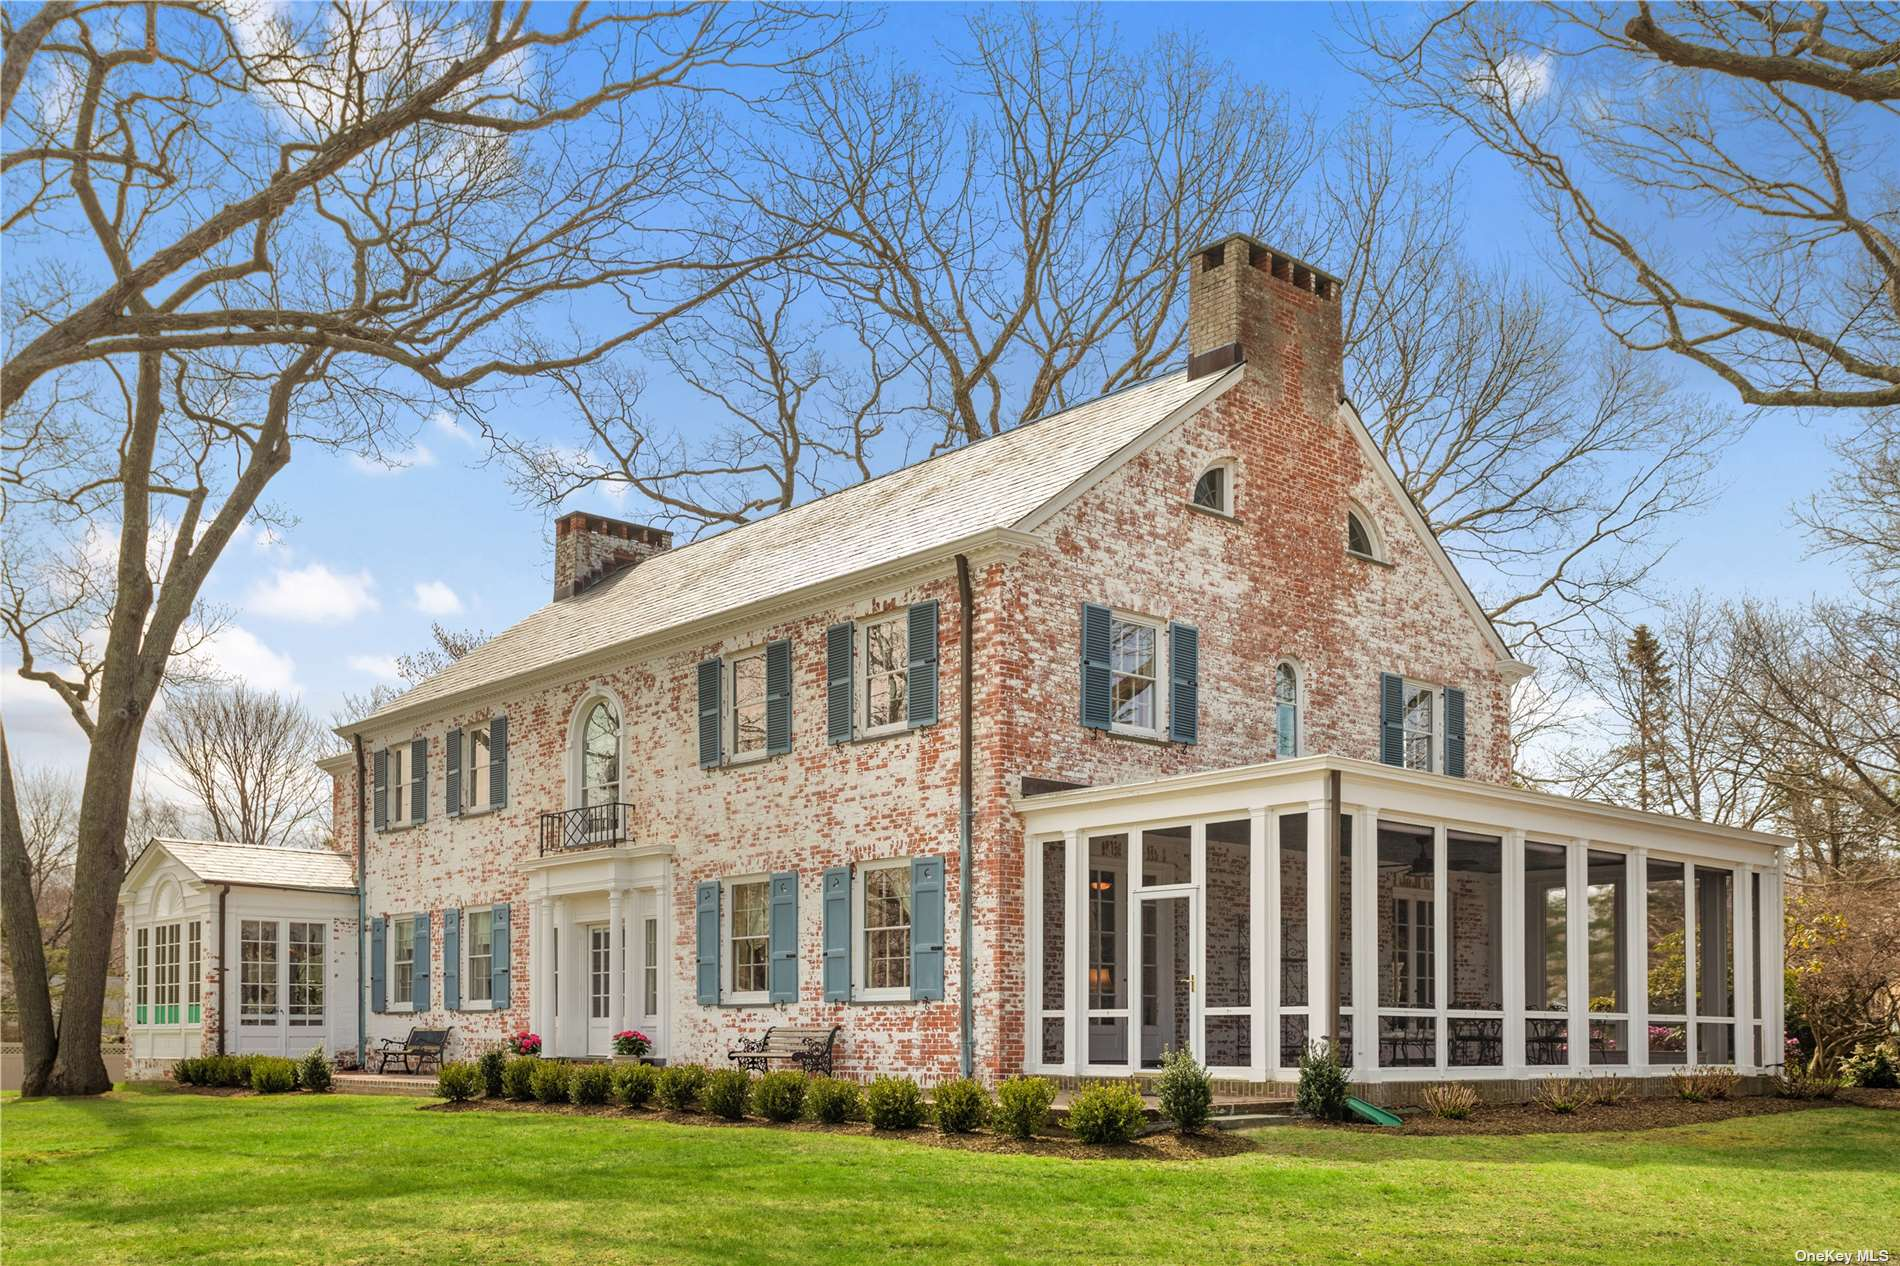 New to the Market! Original Gatsby-era estate home on shy acre with water views, deeded bay beach and protected deep water dock with direct access to the bay. Originally part of 100-acre estate, this Georgian manor home is in the desirable waterfront community of Harbor Lights. The home has been meticulously restored to it's original grandeur and updated with modern kitchen, central air, efficient heating system, and slate roof. Original features include a grand entry hall, formal living room and dining room- both with fireplaces, original wood-paneled library/office with fireplace, breakfast room, butler's pantry, kitchen.  Large screened in porch with water views off the living room. Master ensuite with private morning room/office, guest ensuite, 3 additional bedrooms and 2 baths. Five bedrooms, two sitting rooms, four full & 2 half baths in all. This grand, historic home is a once-in-a-lifetime opportunity!